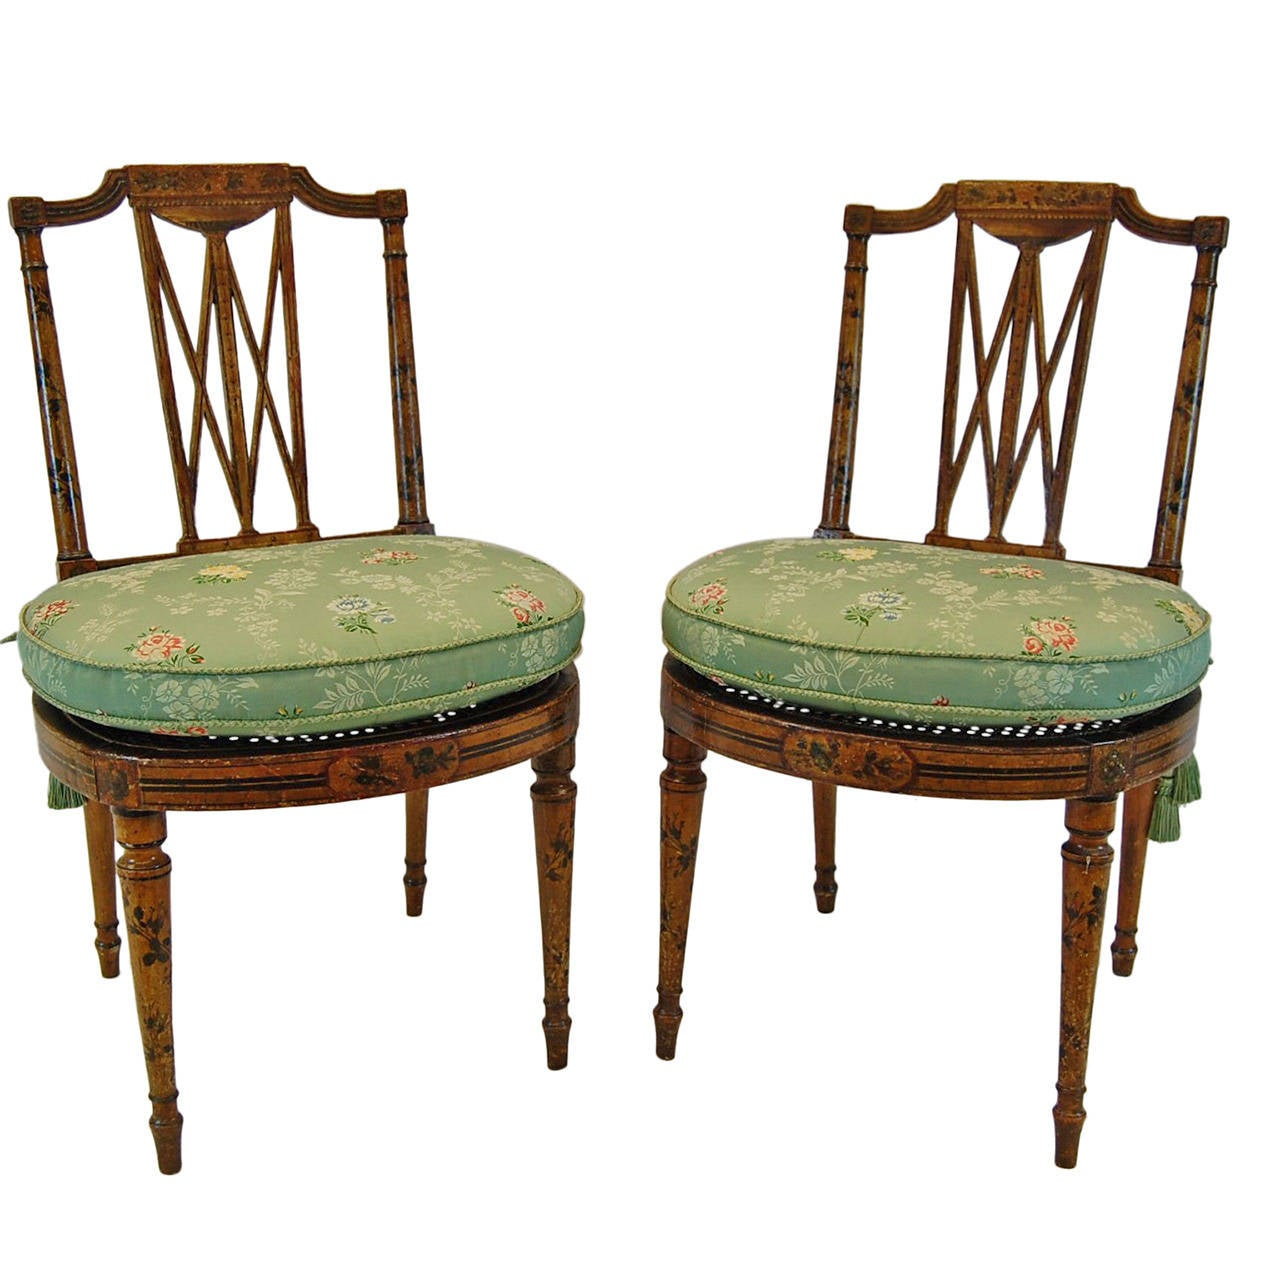 Pair Of 19th Century English Chairs With Cane Seats For Sale